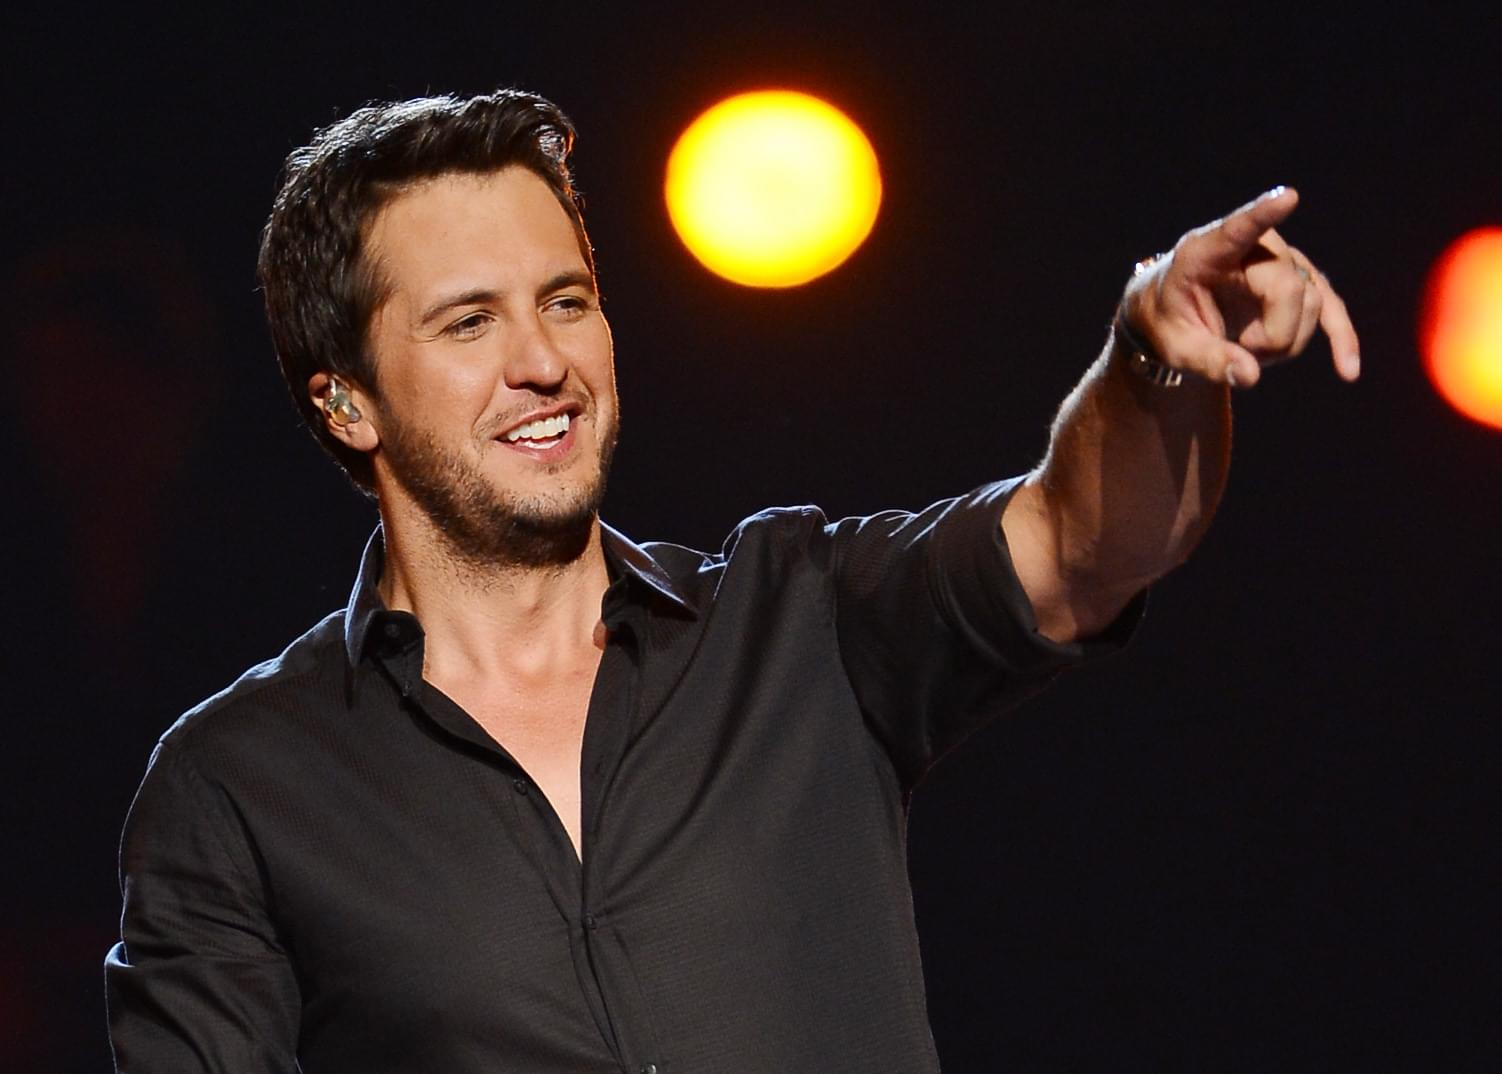 Luke Bryan Catches Panties On Stage Like A Boss!